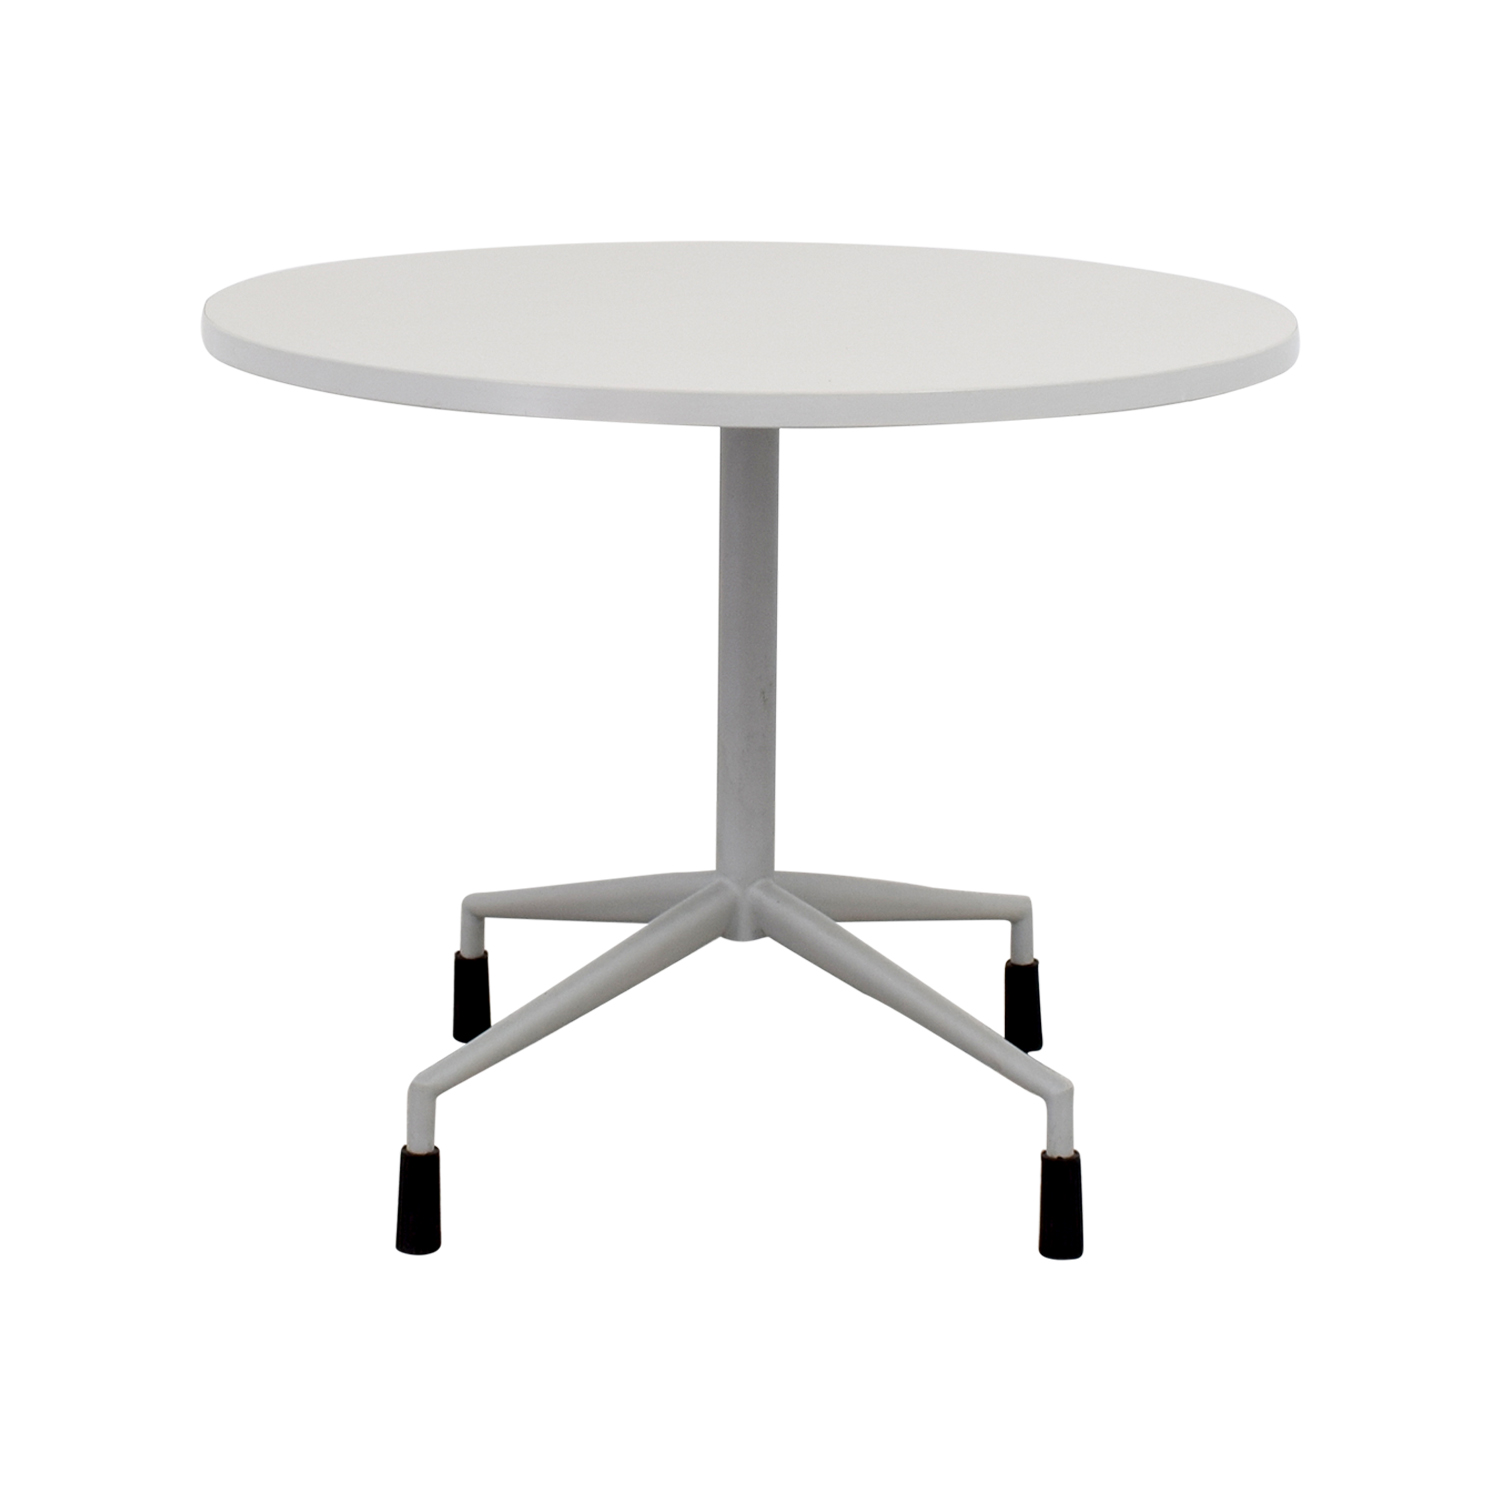 White Round Table with Leg Base dimensions